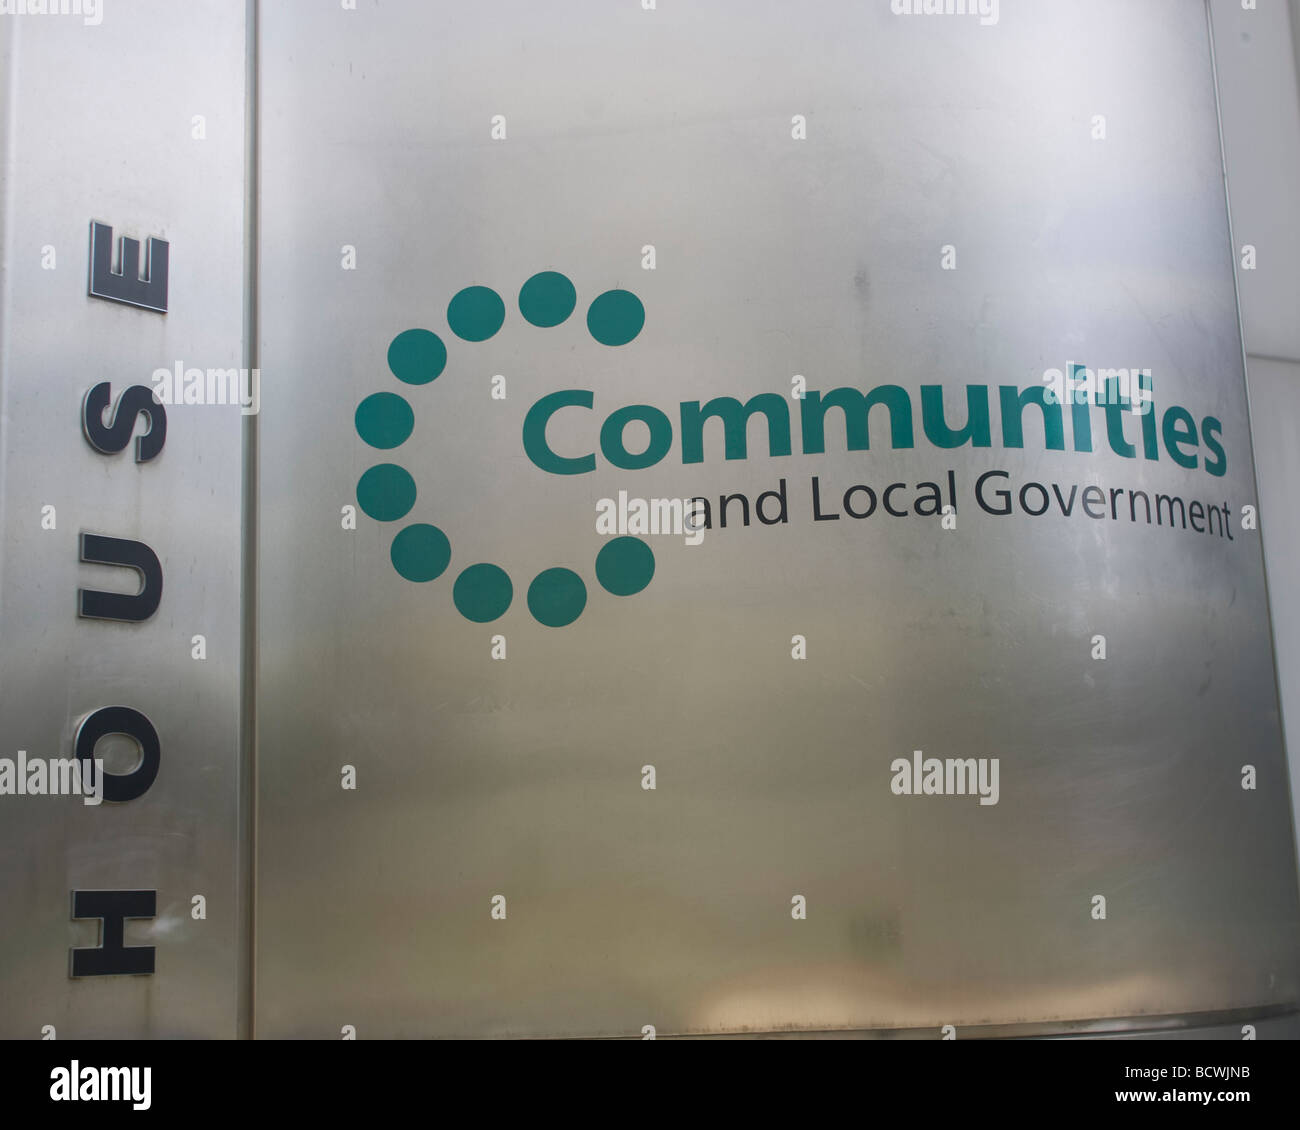 Eland House, Department for Communities and Local Government - Stock Image